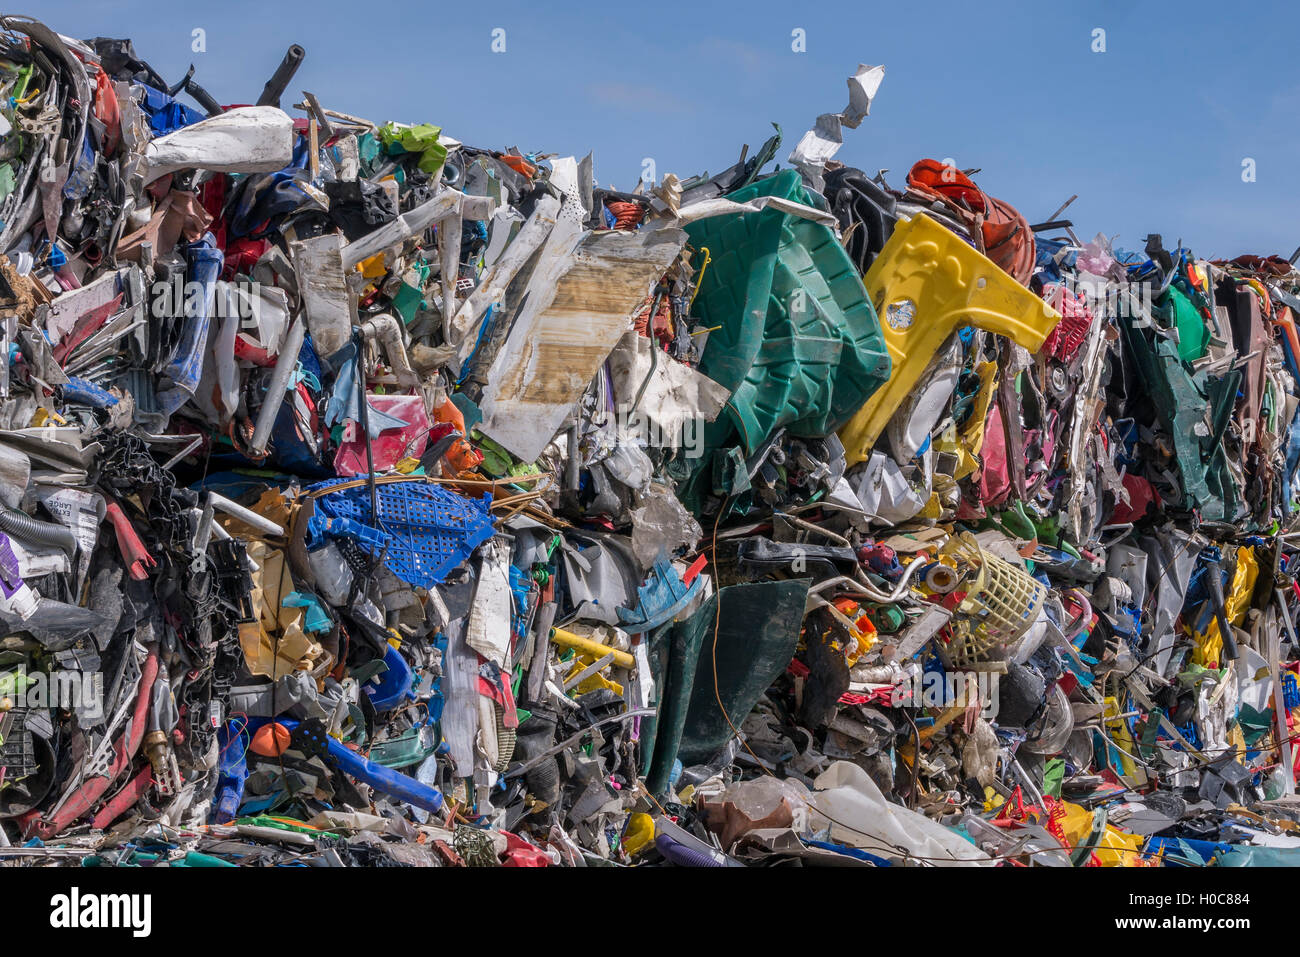 Recycle plastic rubbish - Stock Image